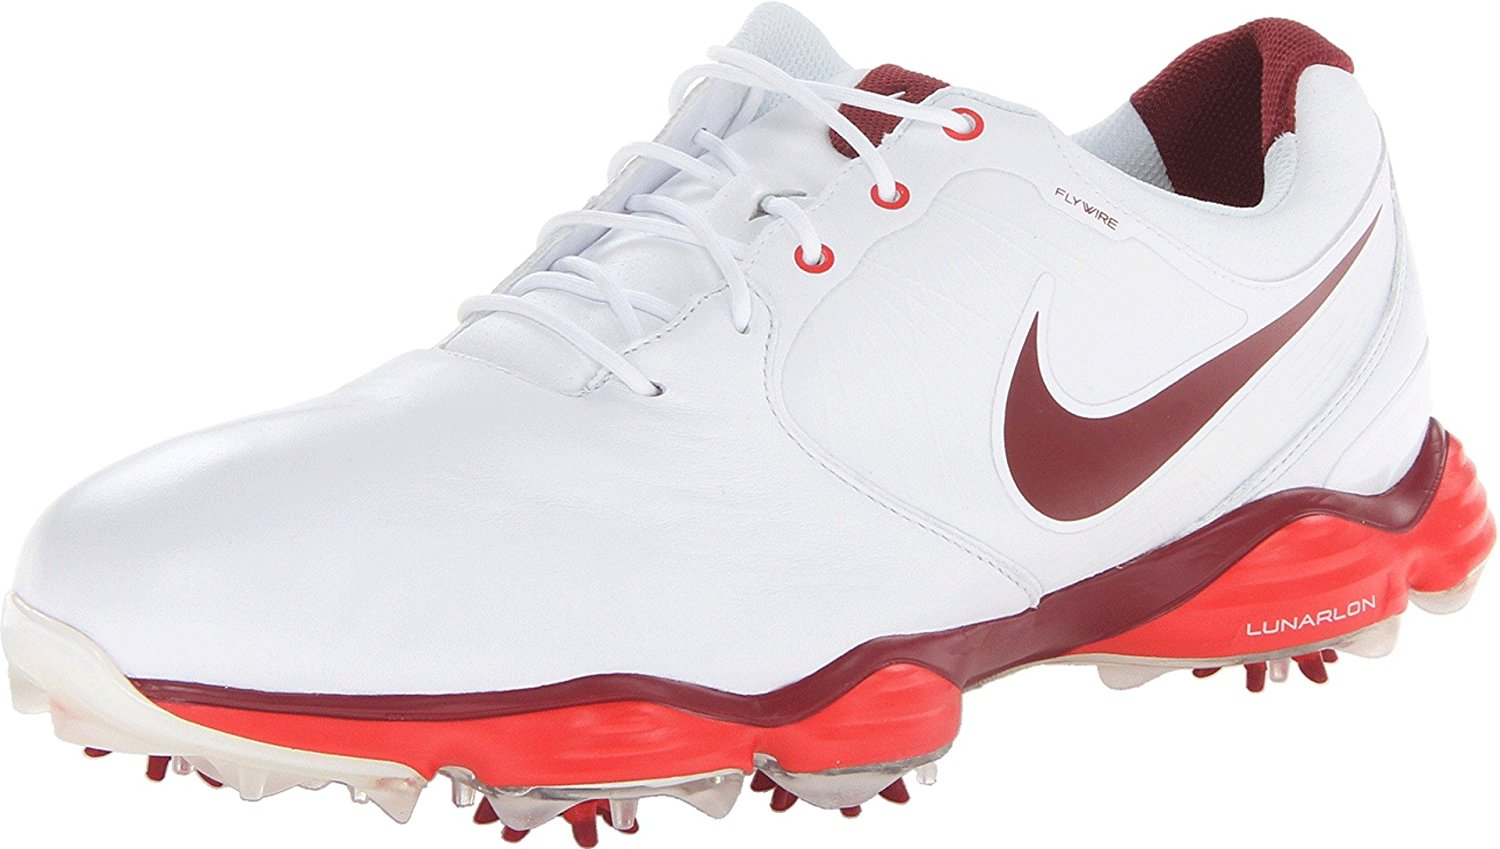 New Nike Lunar Control II Golf Shoes White Challenge Red Team Red 9 M by Nike